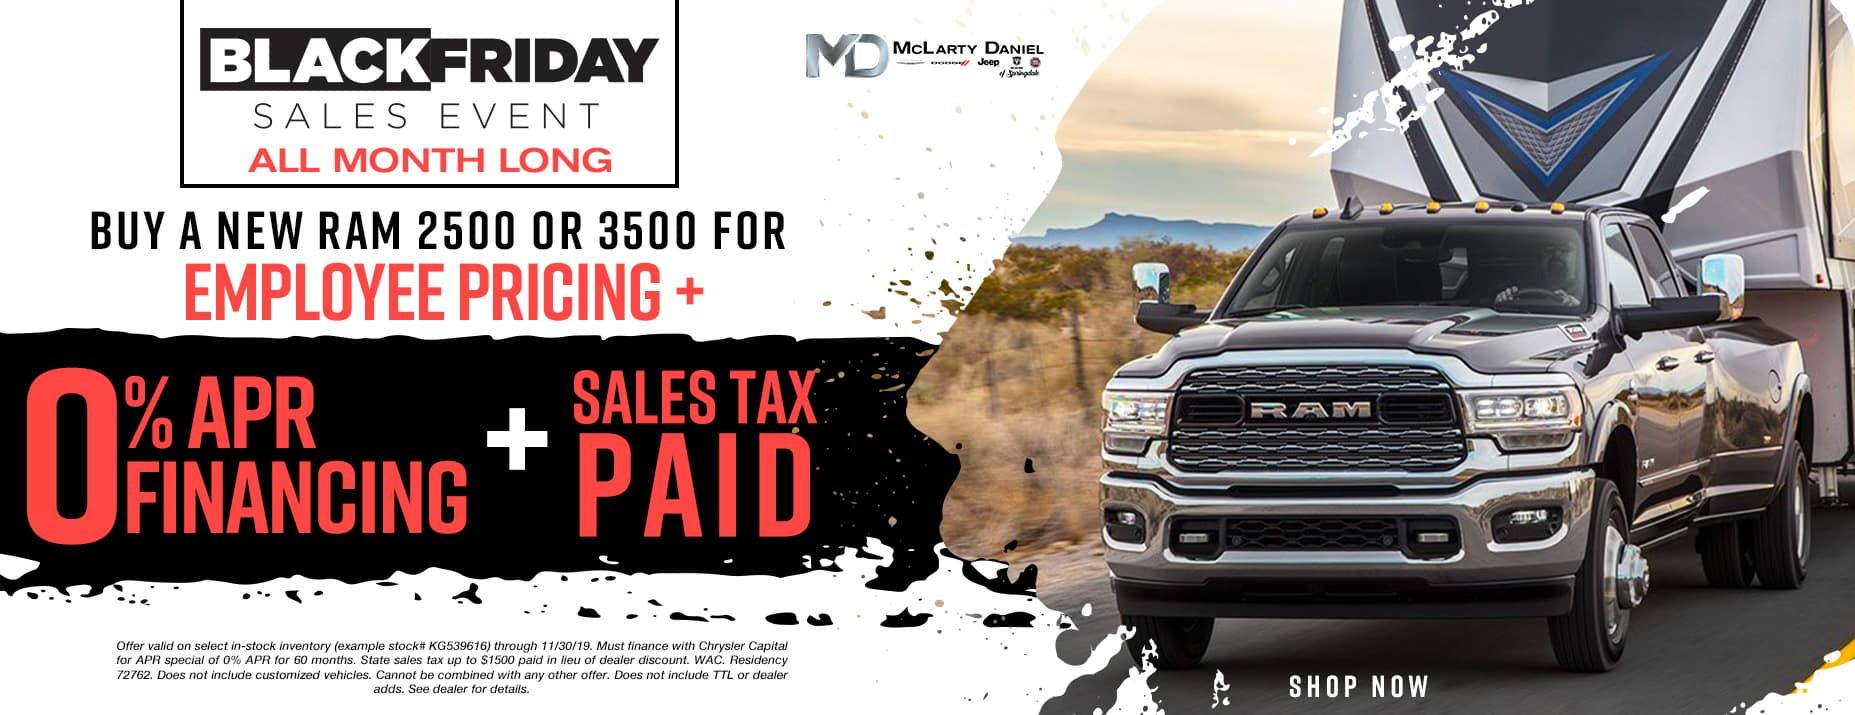 EMPLOYEE PRICING FOR EVERYONE! BUY A NEW RAM 2500 or 3500FOR EMPLOYEE PRICING -PLUS- 0% APR -PLUS- SALES TAX PAID!